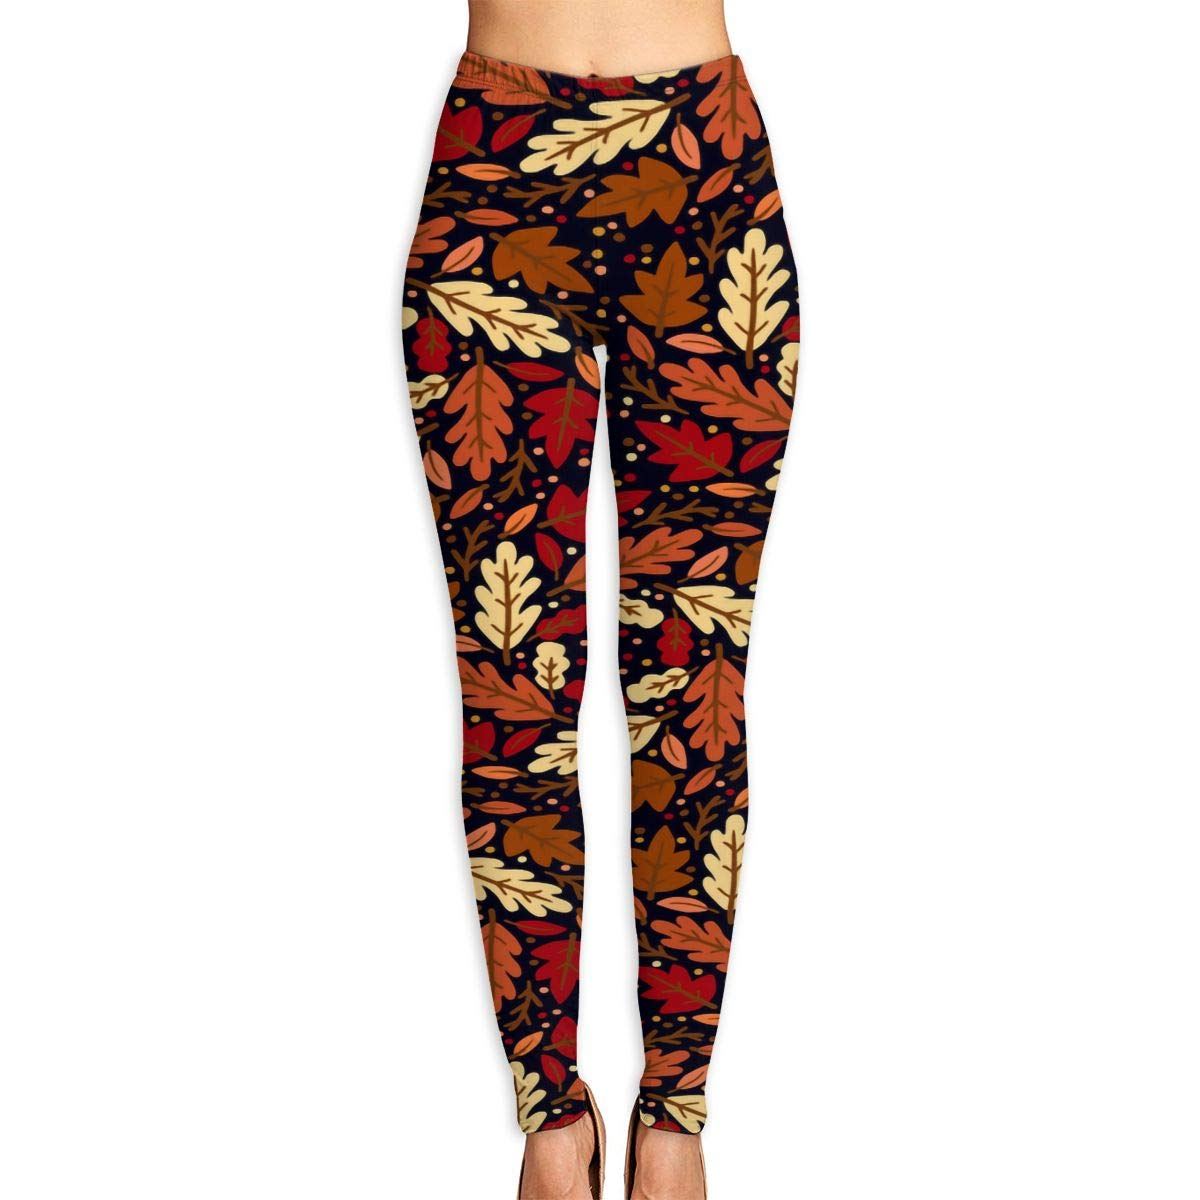 Womens Yoga Pants Fall Autumn Leaves Fitness Power Flex ...